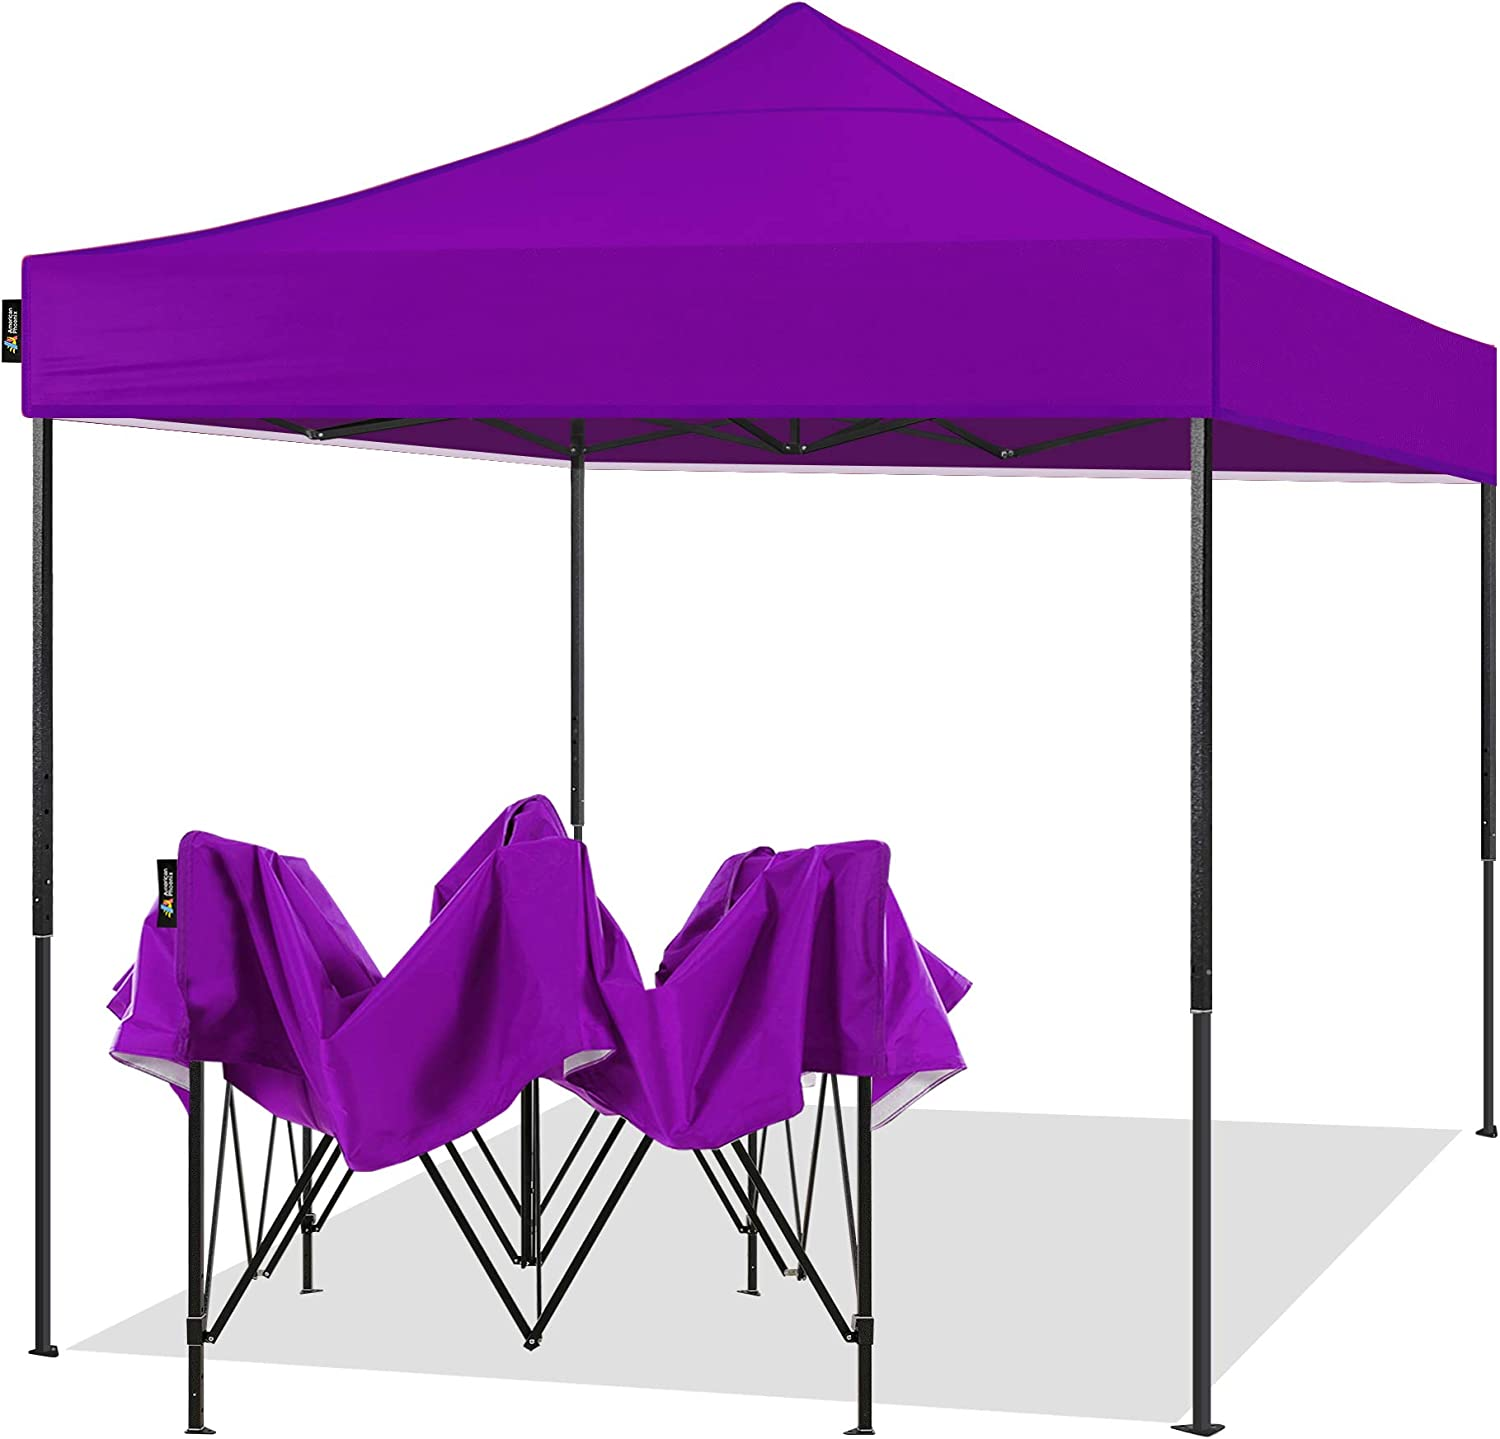 AMERICAN PHOENIX 10x10 Pop Up Canopy Tent Portable Instant Adjustable Easy Up Tent Outdoor Market Canopy Shelter (10'x10' Black Frame, Purple)